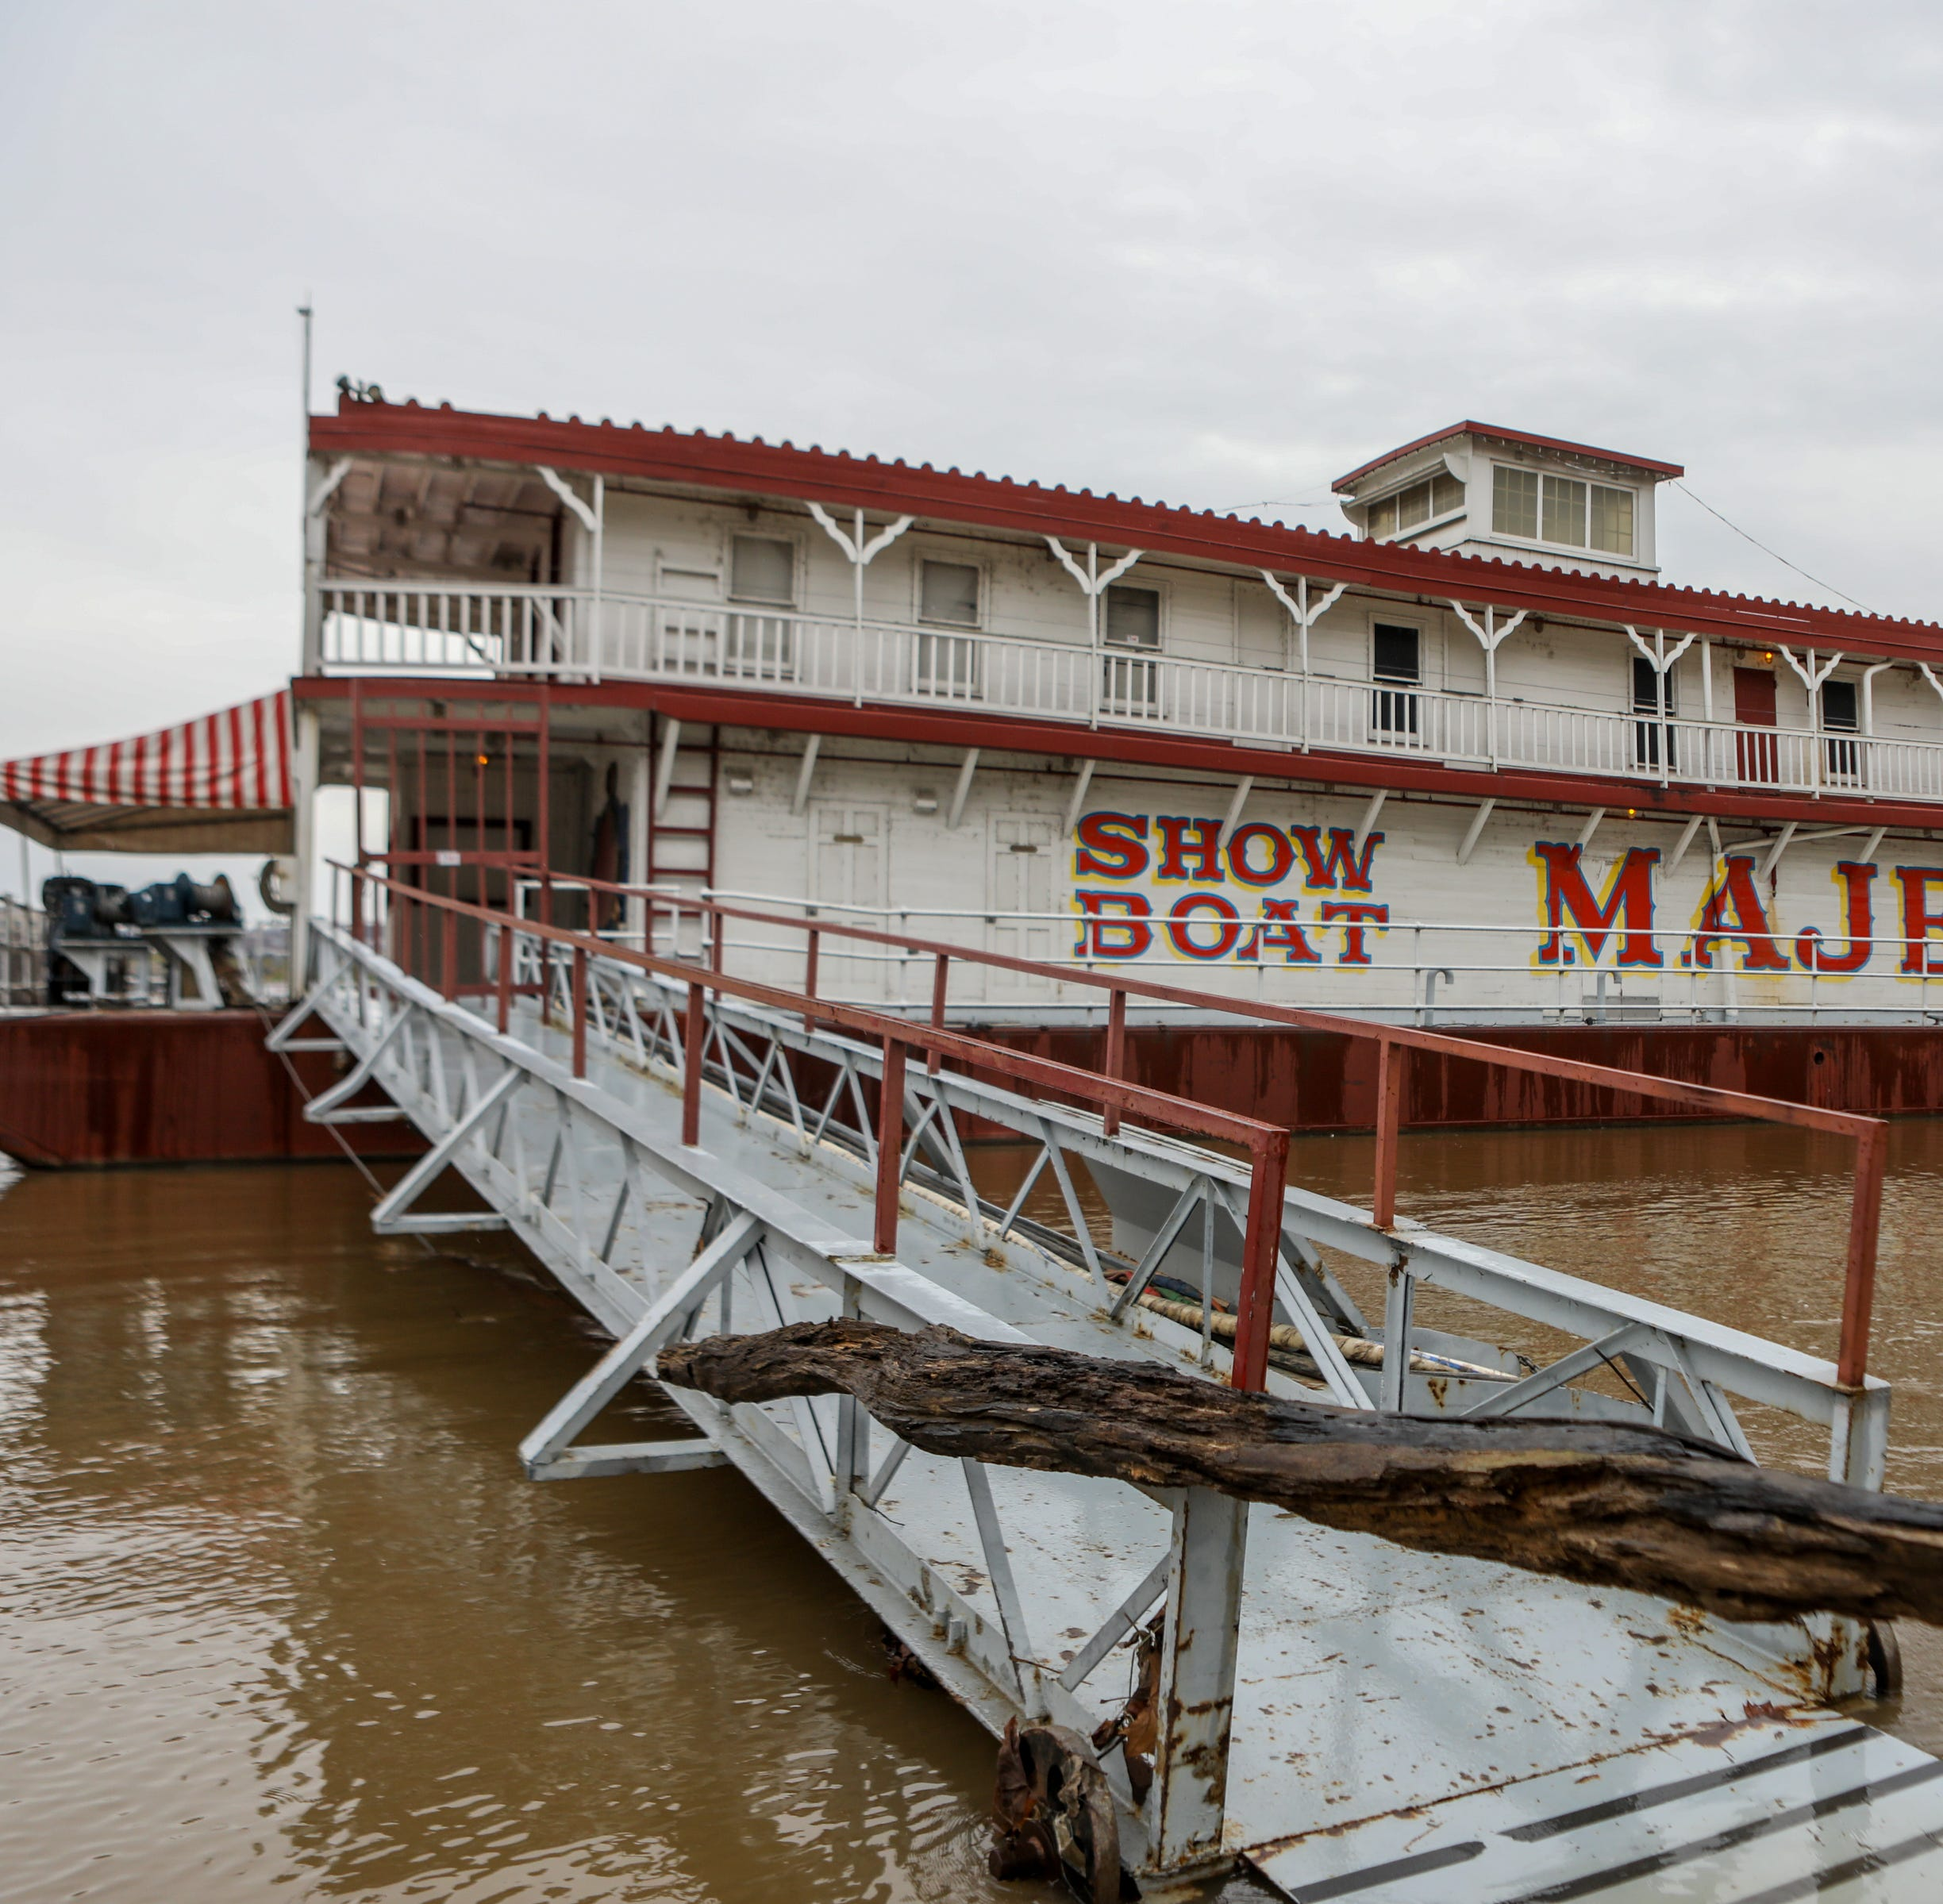 Want to buy a historic riverboat? Cincinnati is selling the Showboat Majestic, a National Historic Landmark